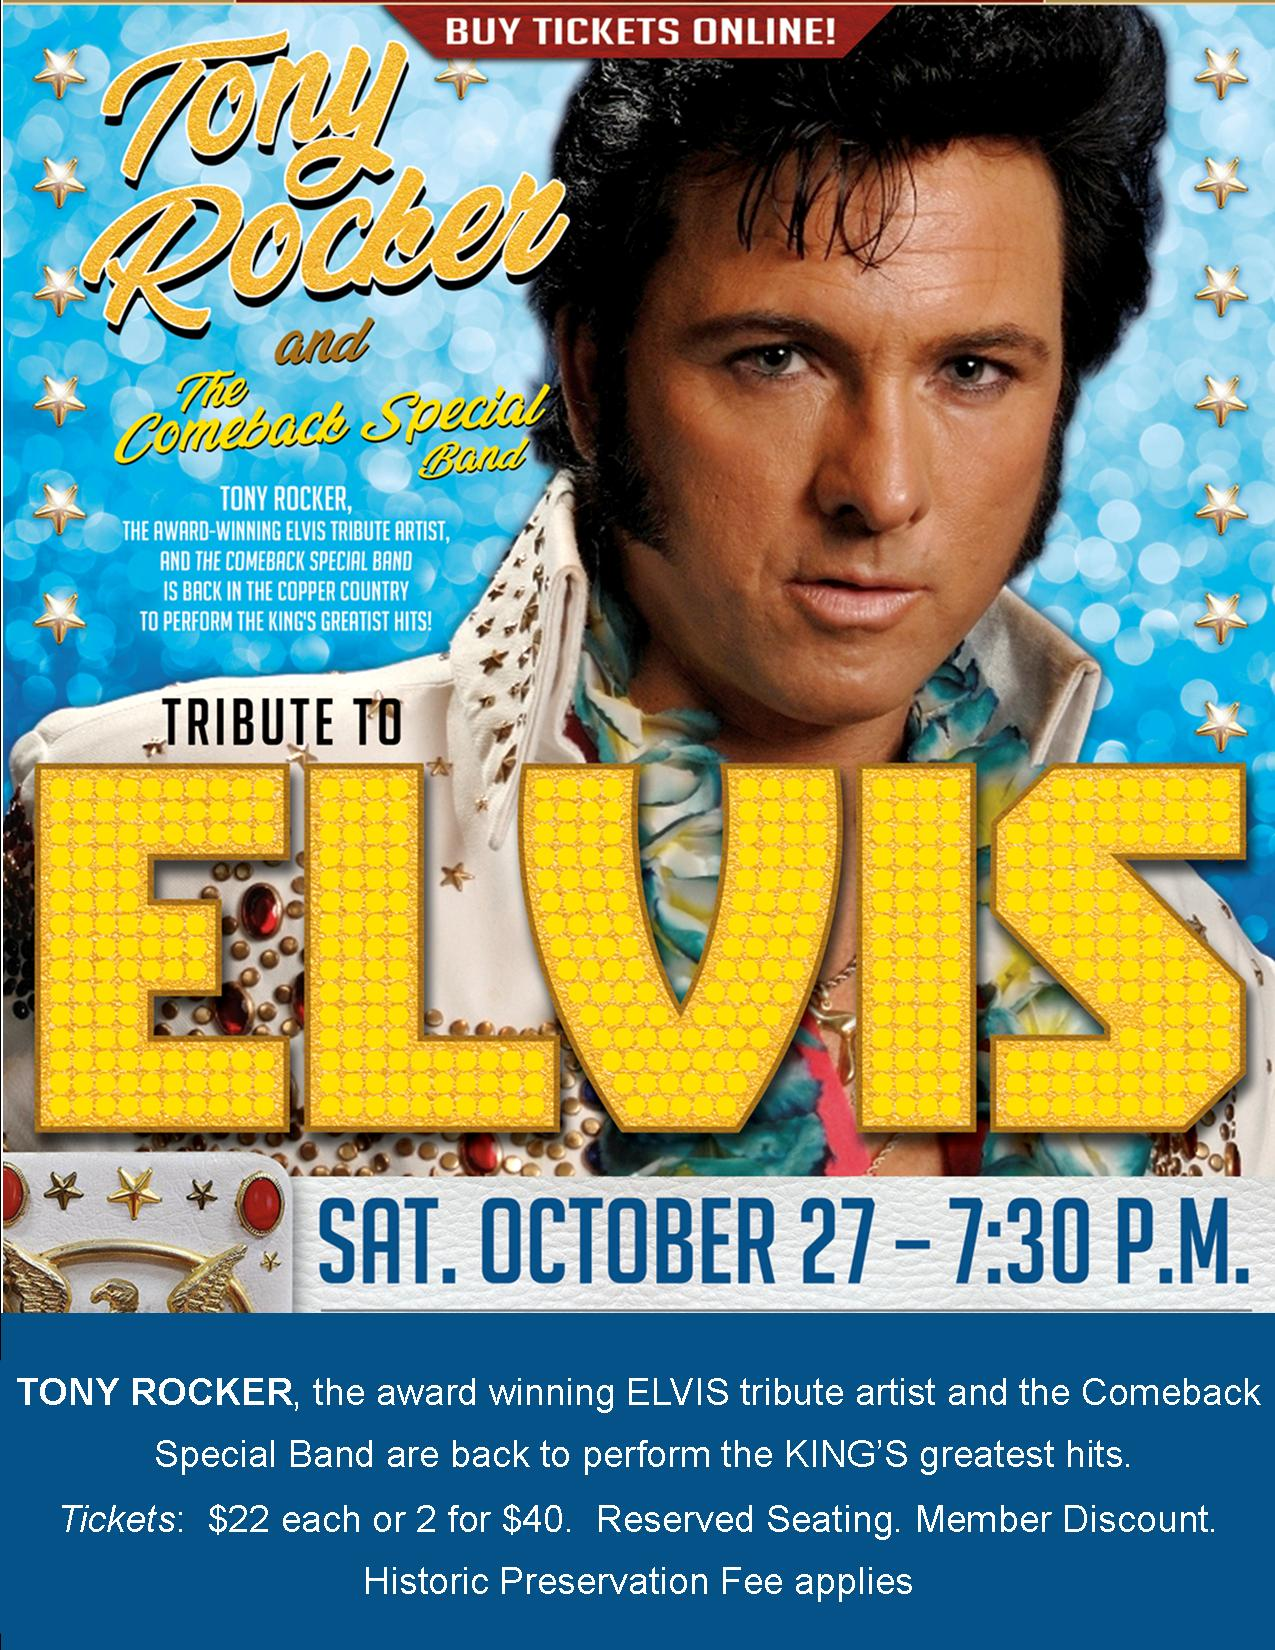 TONY ROCKER (ELVIS TRIBUTE) & the Comeback Special Band